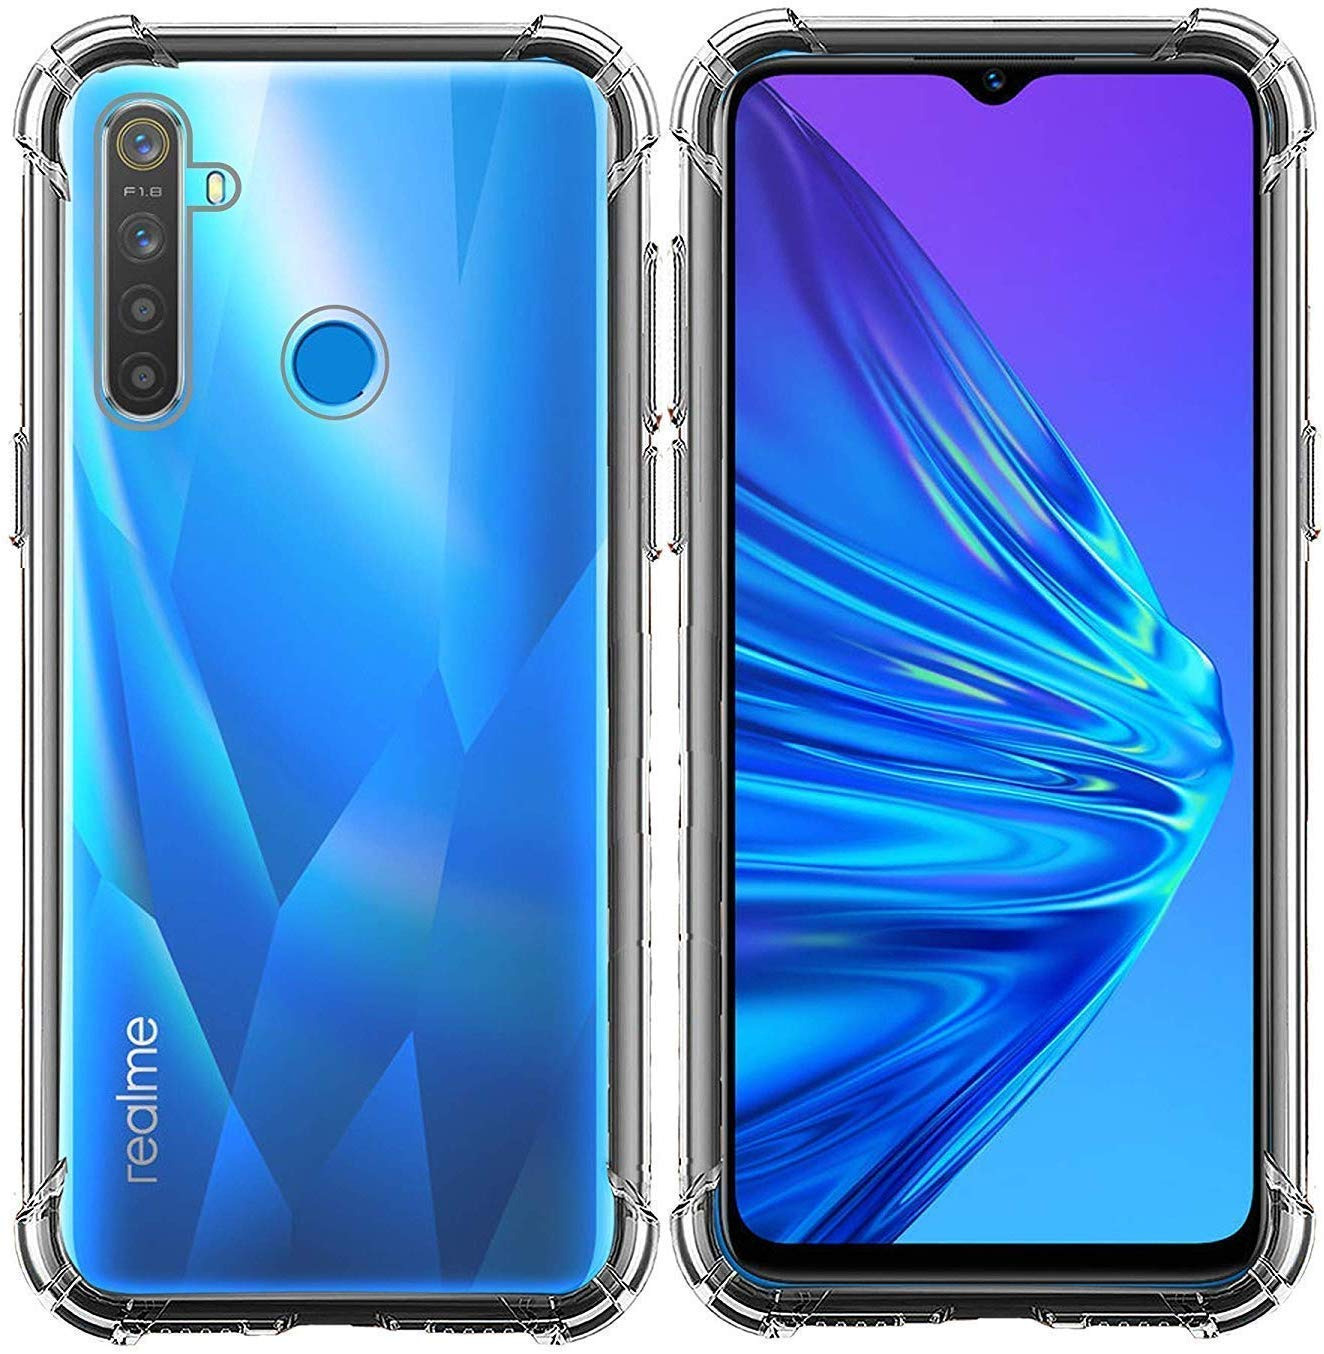 Jain Impex Mobile Cover for Realme 5i Transparent Soft: Amazon.in